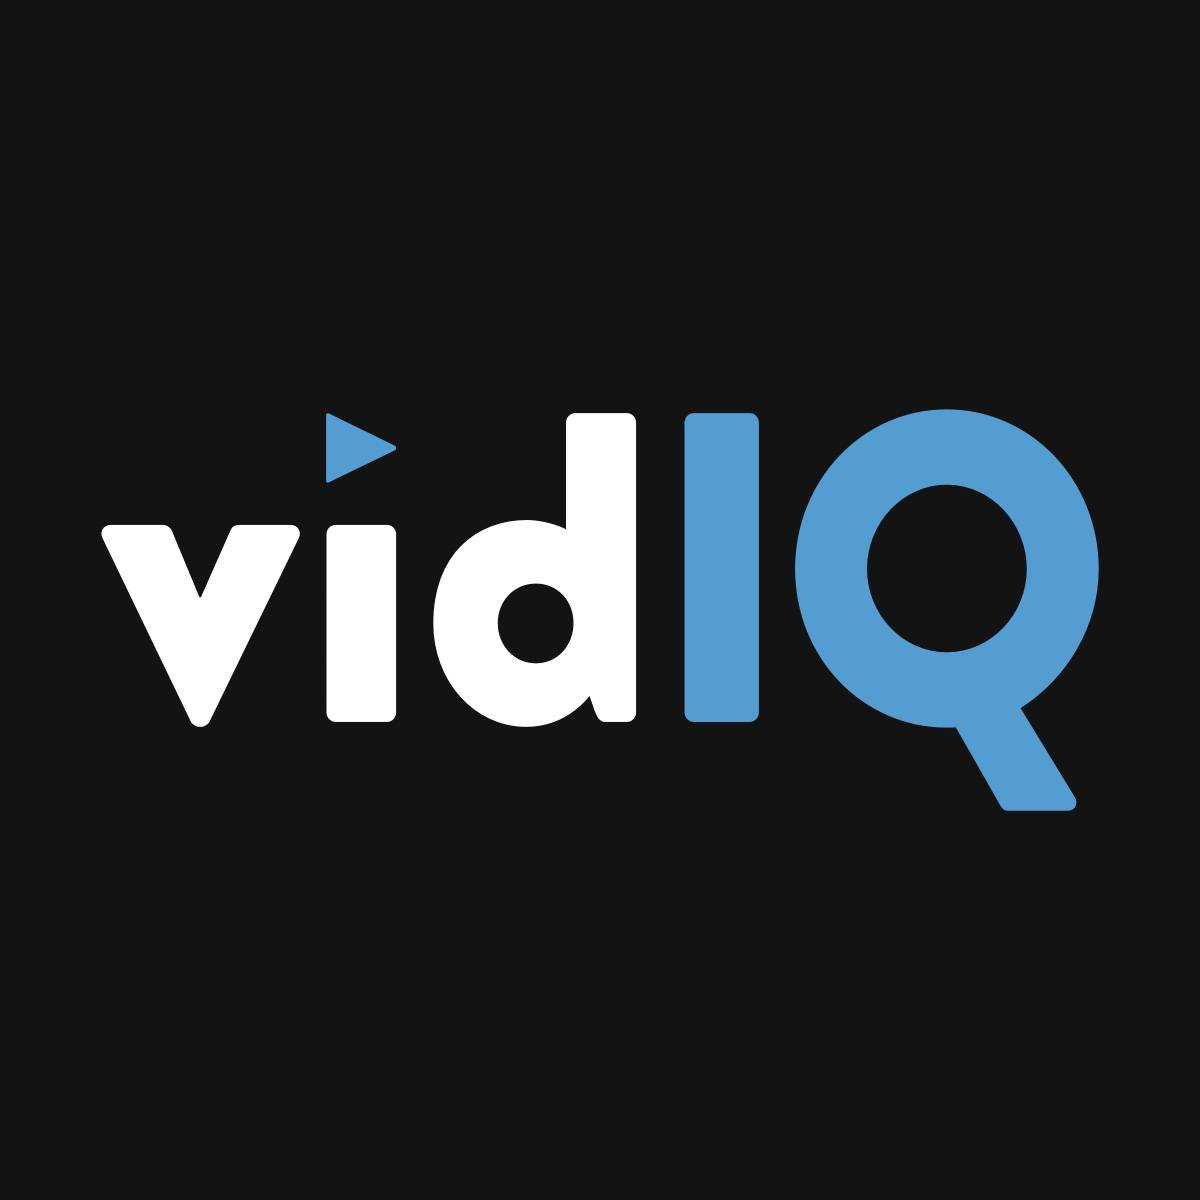 How To Get More Views And Subscribers On YouTube - vidIQ